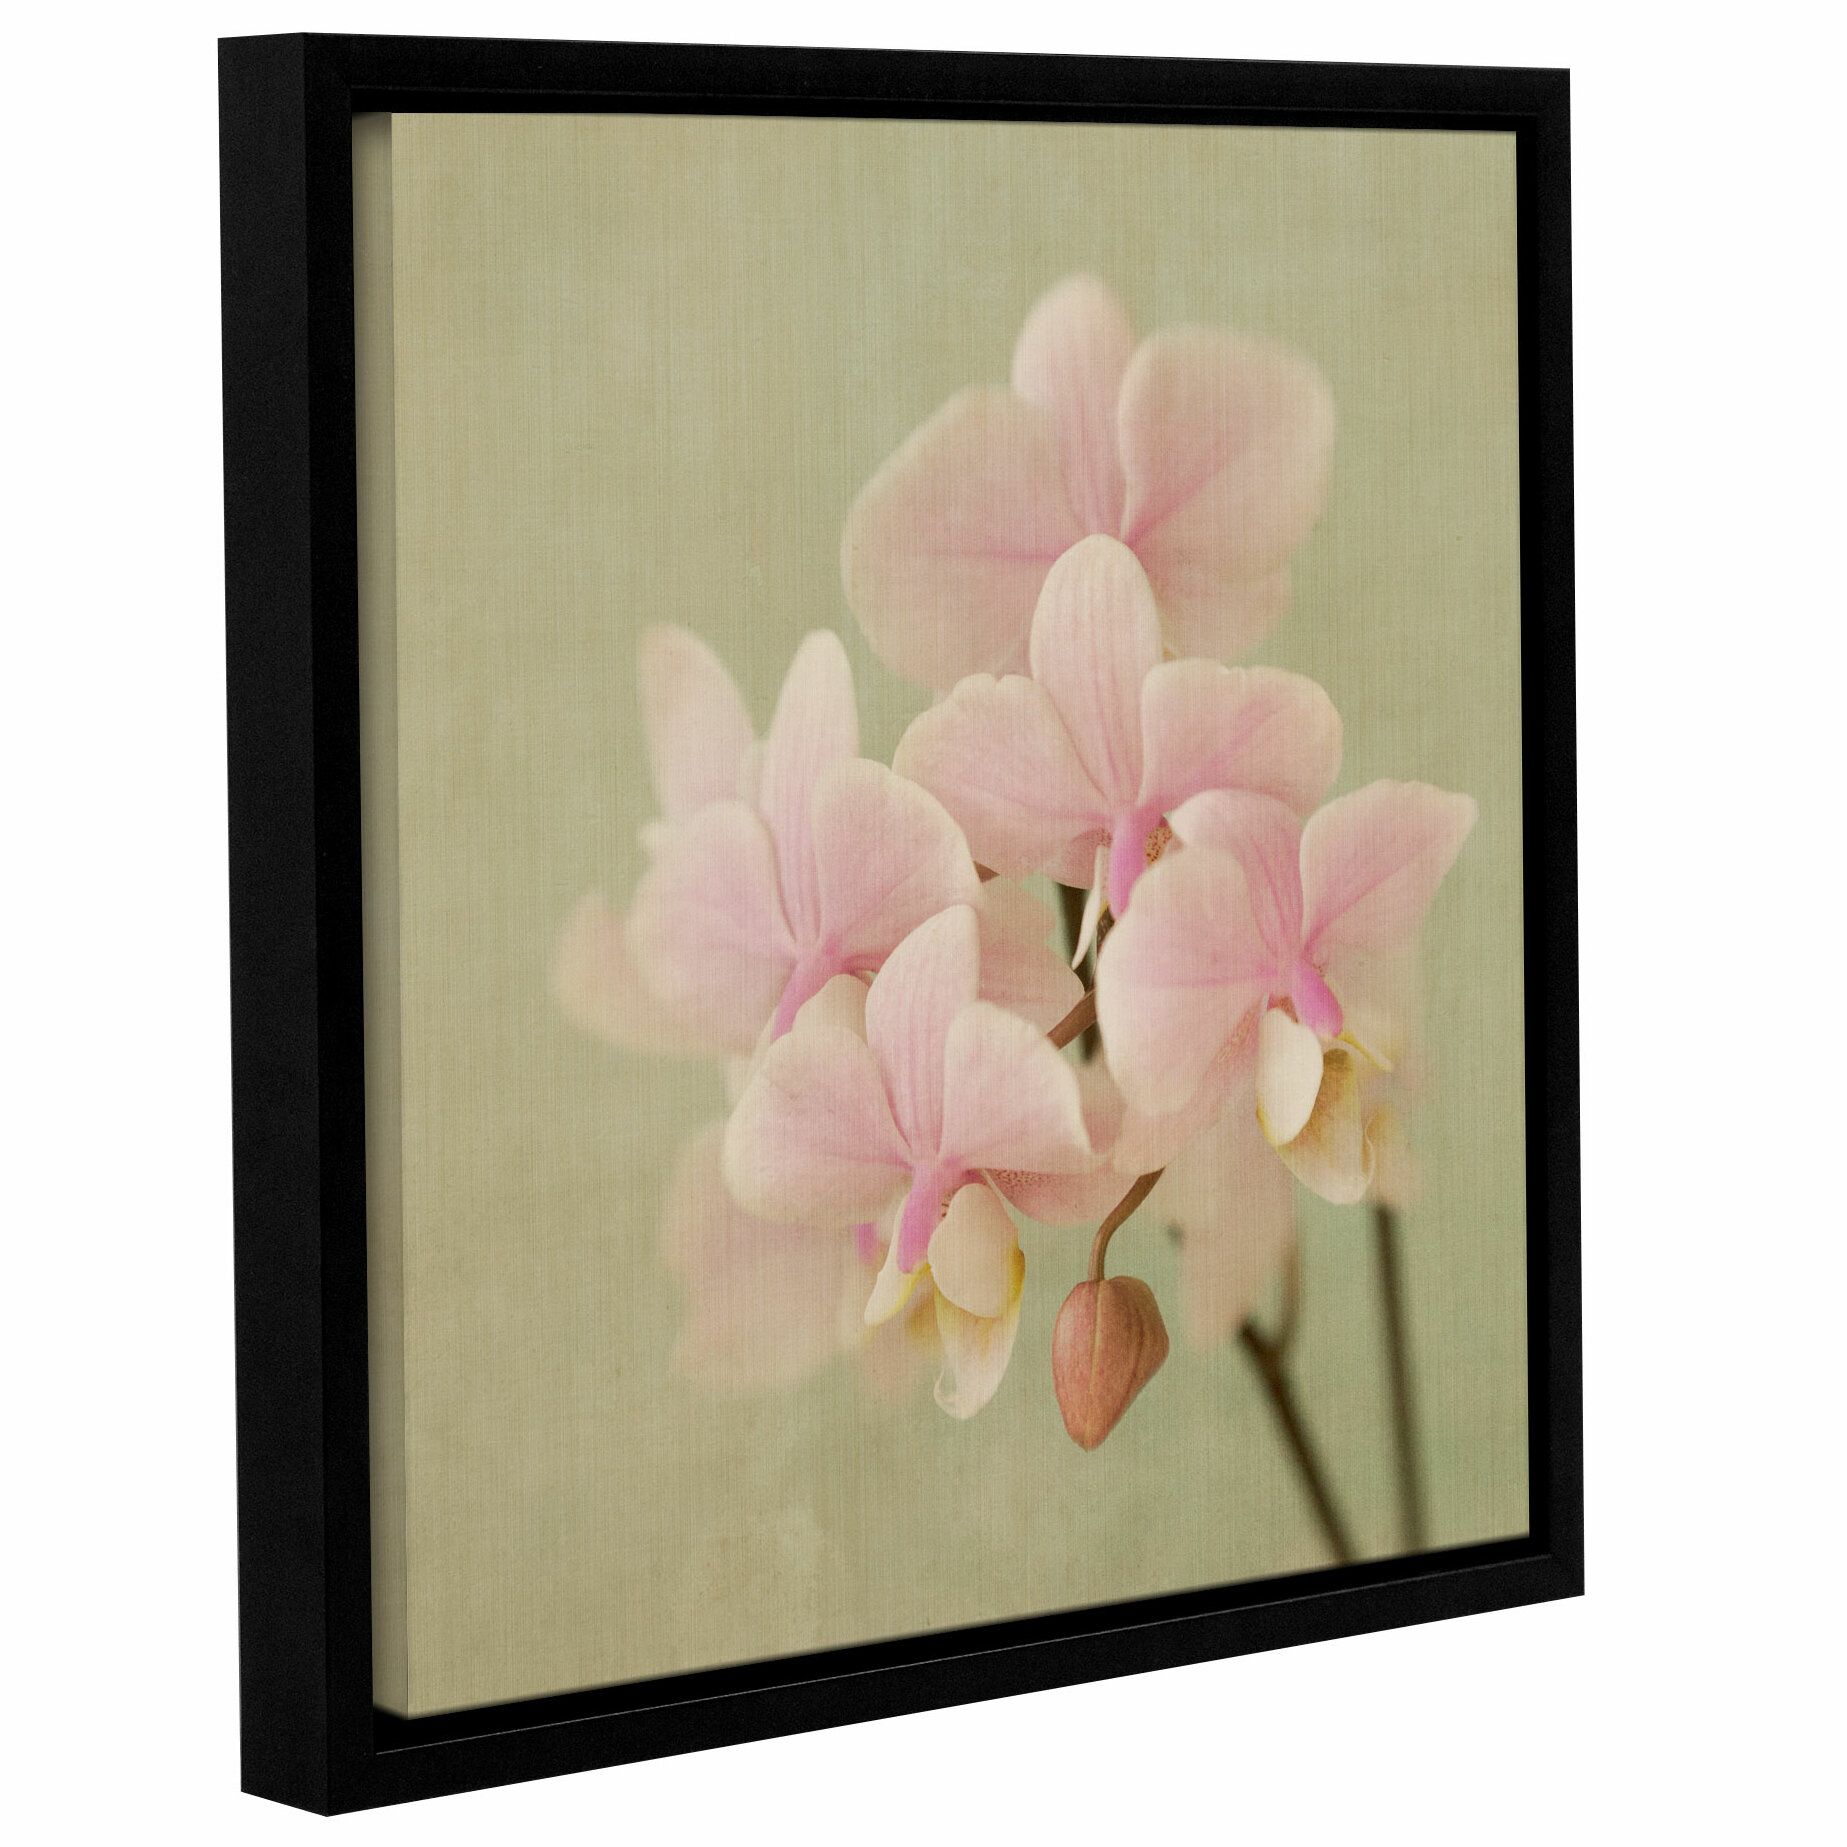 Ophelia Co Soft Orchid Framed Graphic Art Wayfair